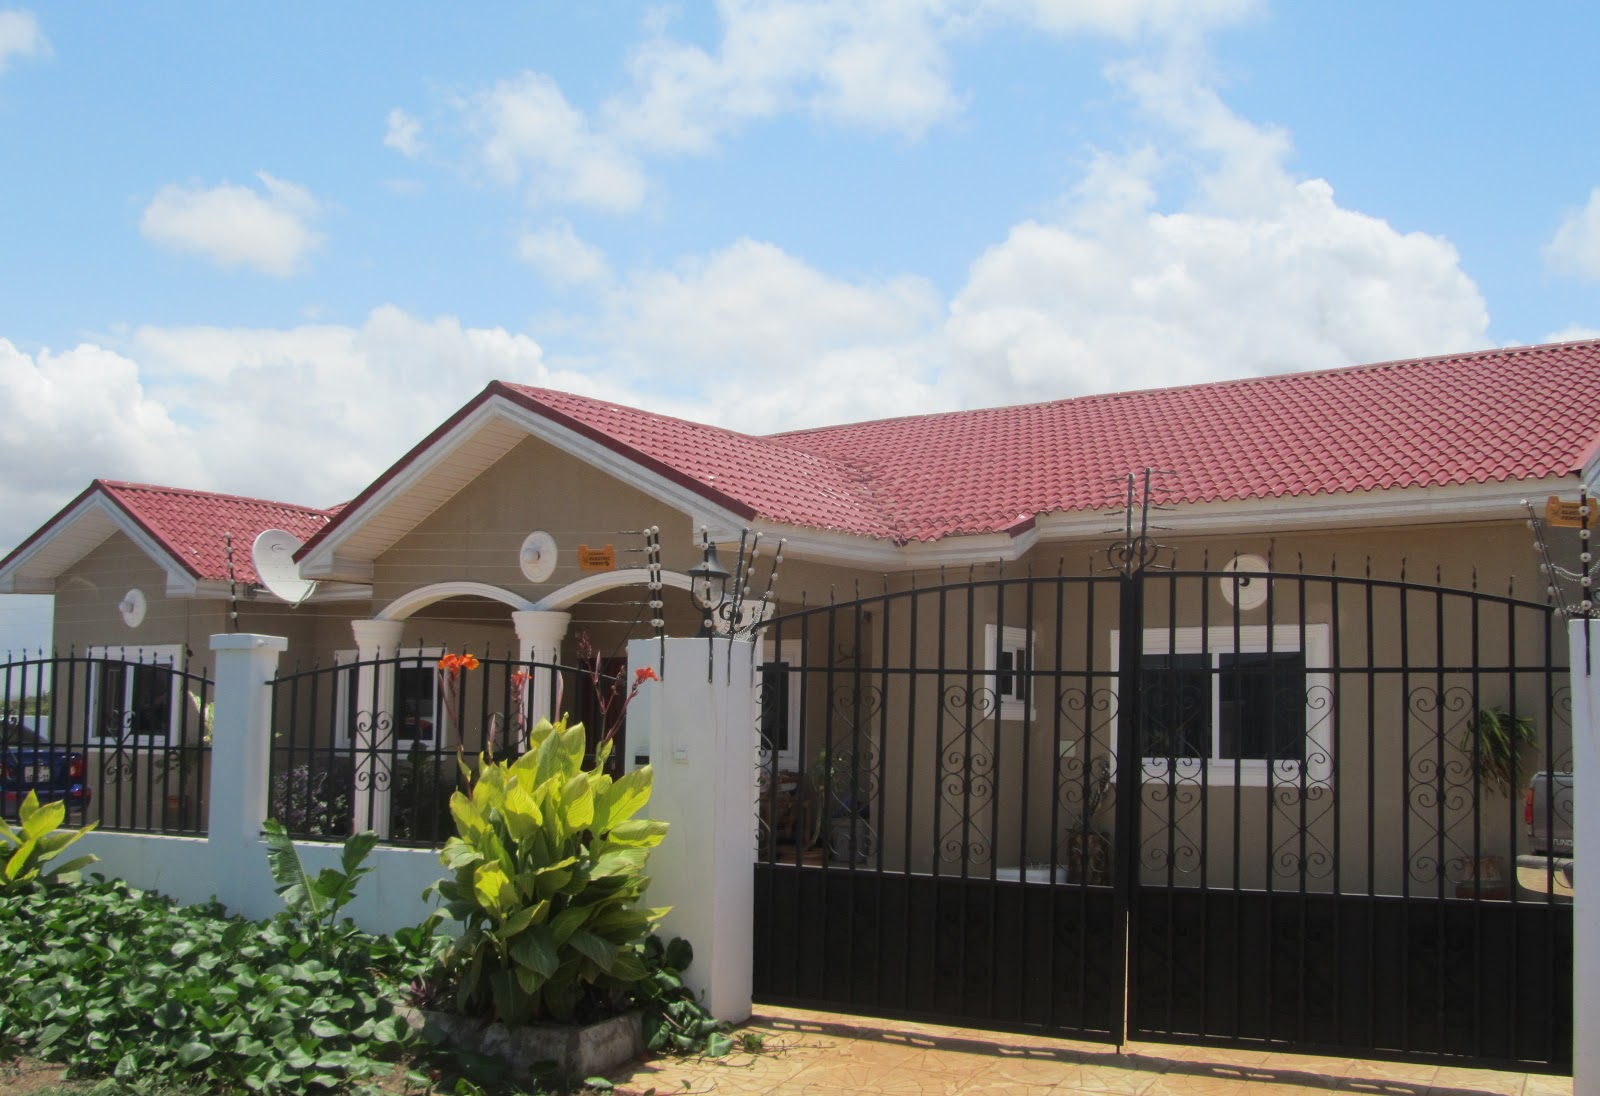 Ghana My Choicest Travel Destination also Real Estate Houses In Ghana furthermore Accra Affordable Houses In Ghana Homes For likewise Posts additionally 4 Bedroom House For Sale In Trasacco Valley East Legon Accra. on trasacco valley houses accra in ghana